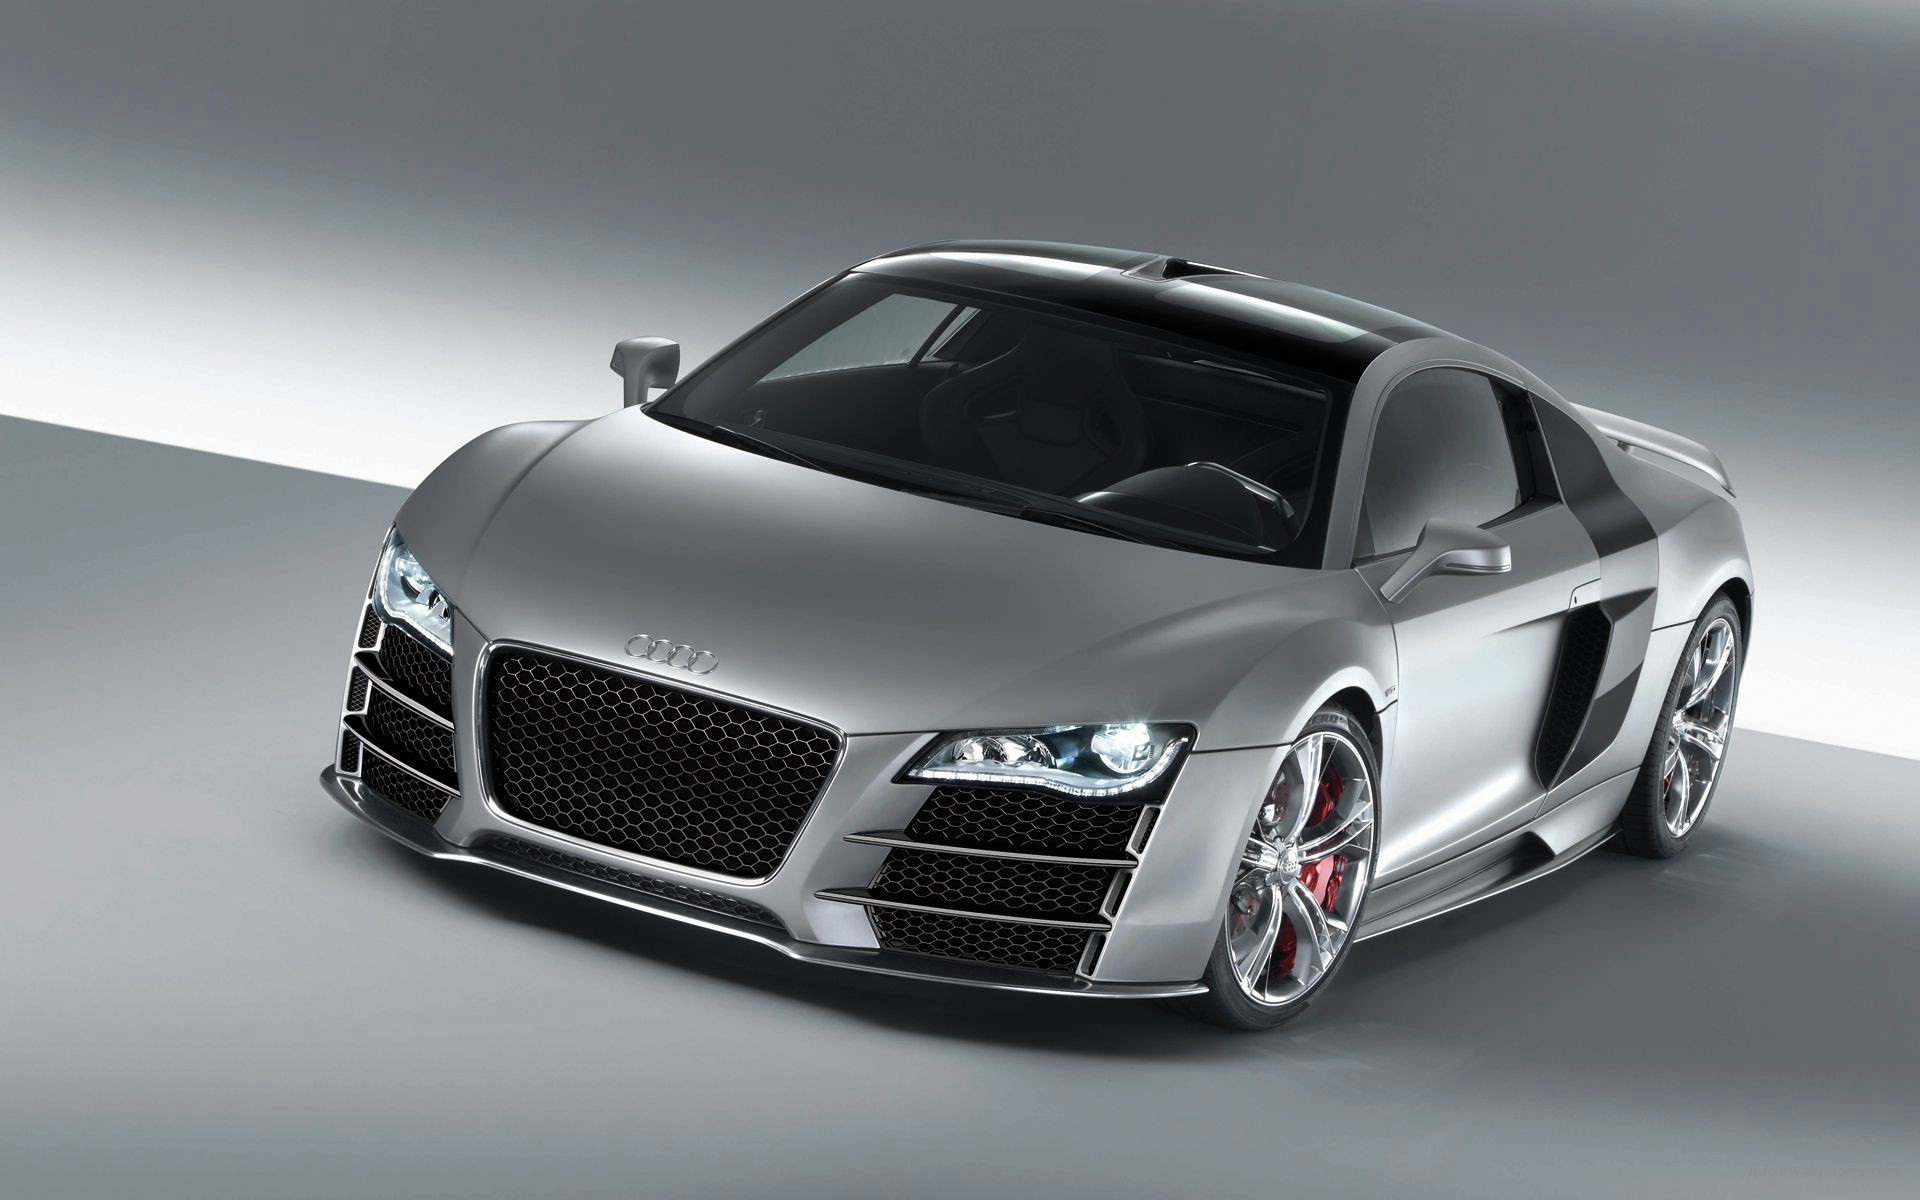 audi r8 v12 wallpaper high definition high quality widescreen. Black Bedroom Furniture Sets. Home Design Ideas